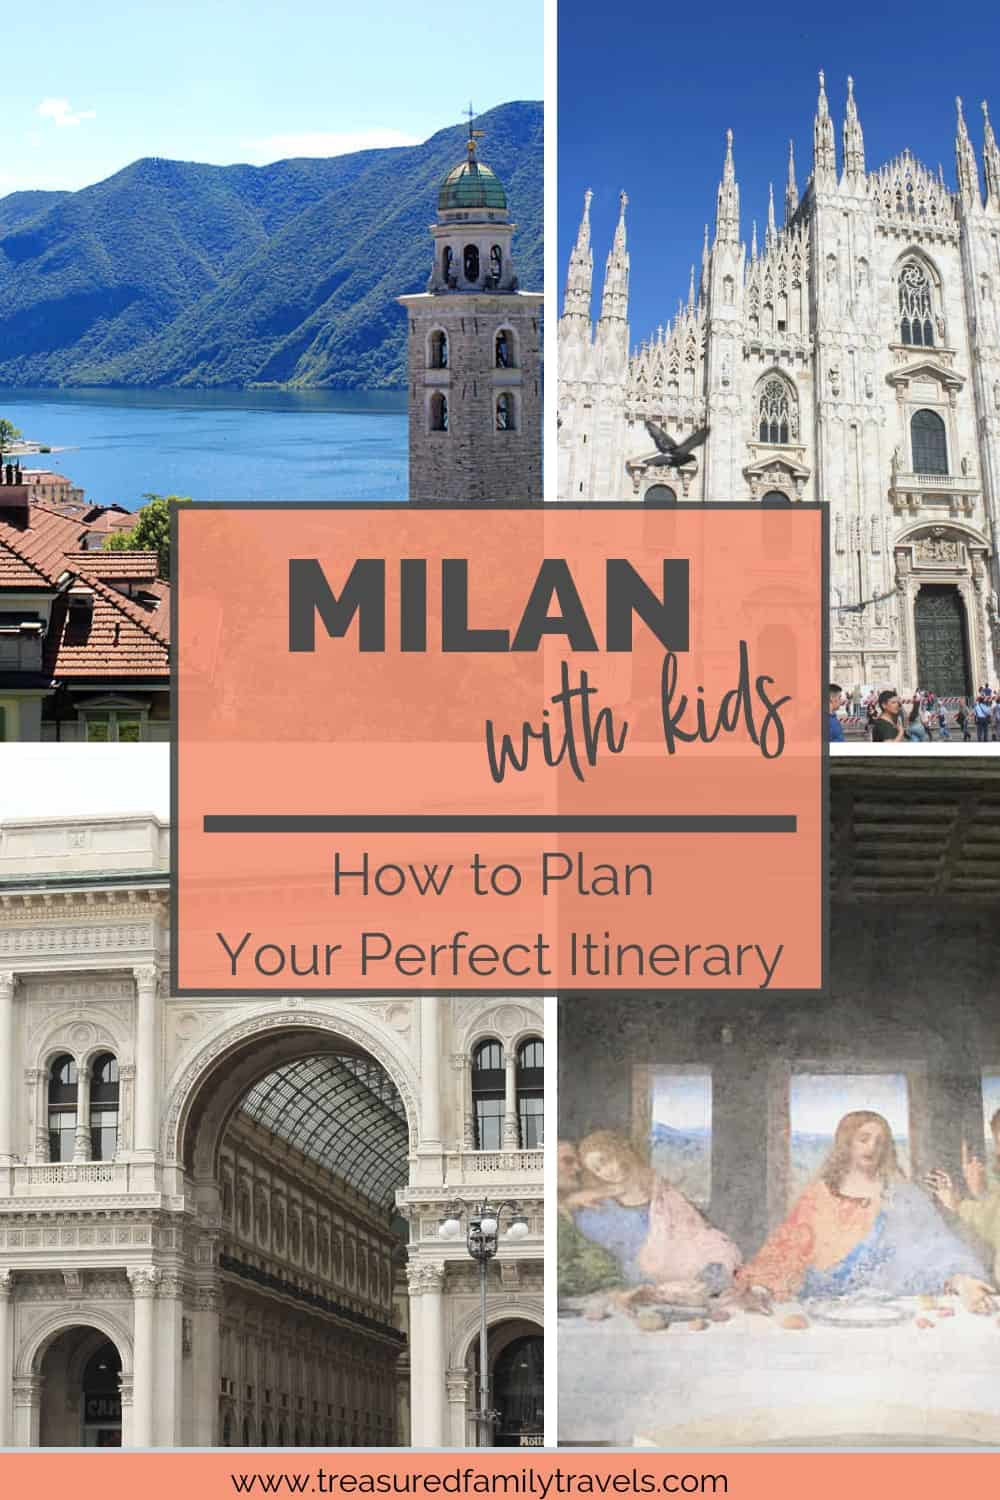 Vacationing in Milan with kids? If you are traveling to one of Italy's greatest destinations and are looking for things to do with children, click here! Find places to go in Milan with kids as well as day trips from this central city. #milan #milanitaly #europe